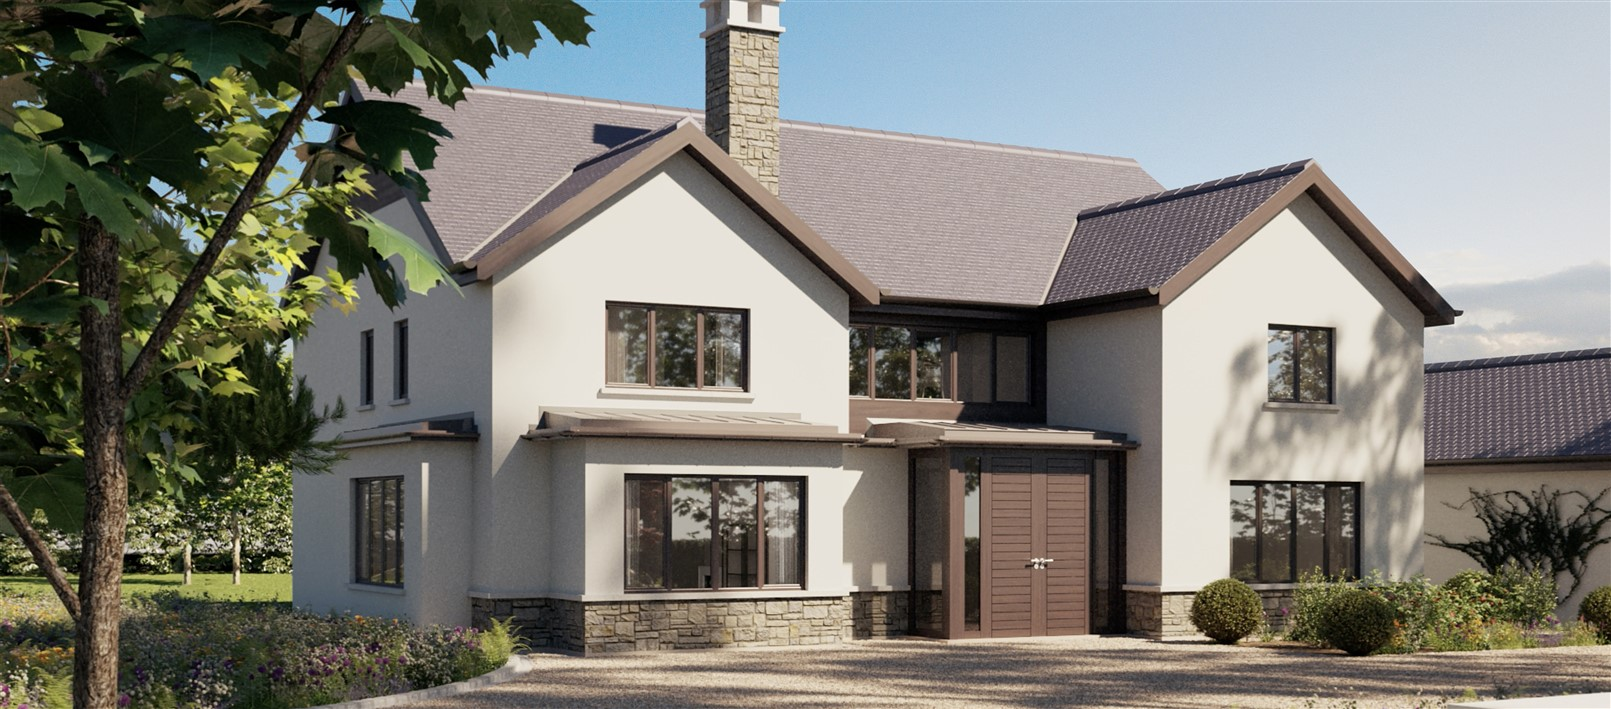 Loughmore at Killeen Castle, Dunsany, Co. Meath – sites with full planning permission